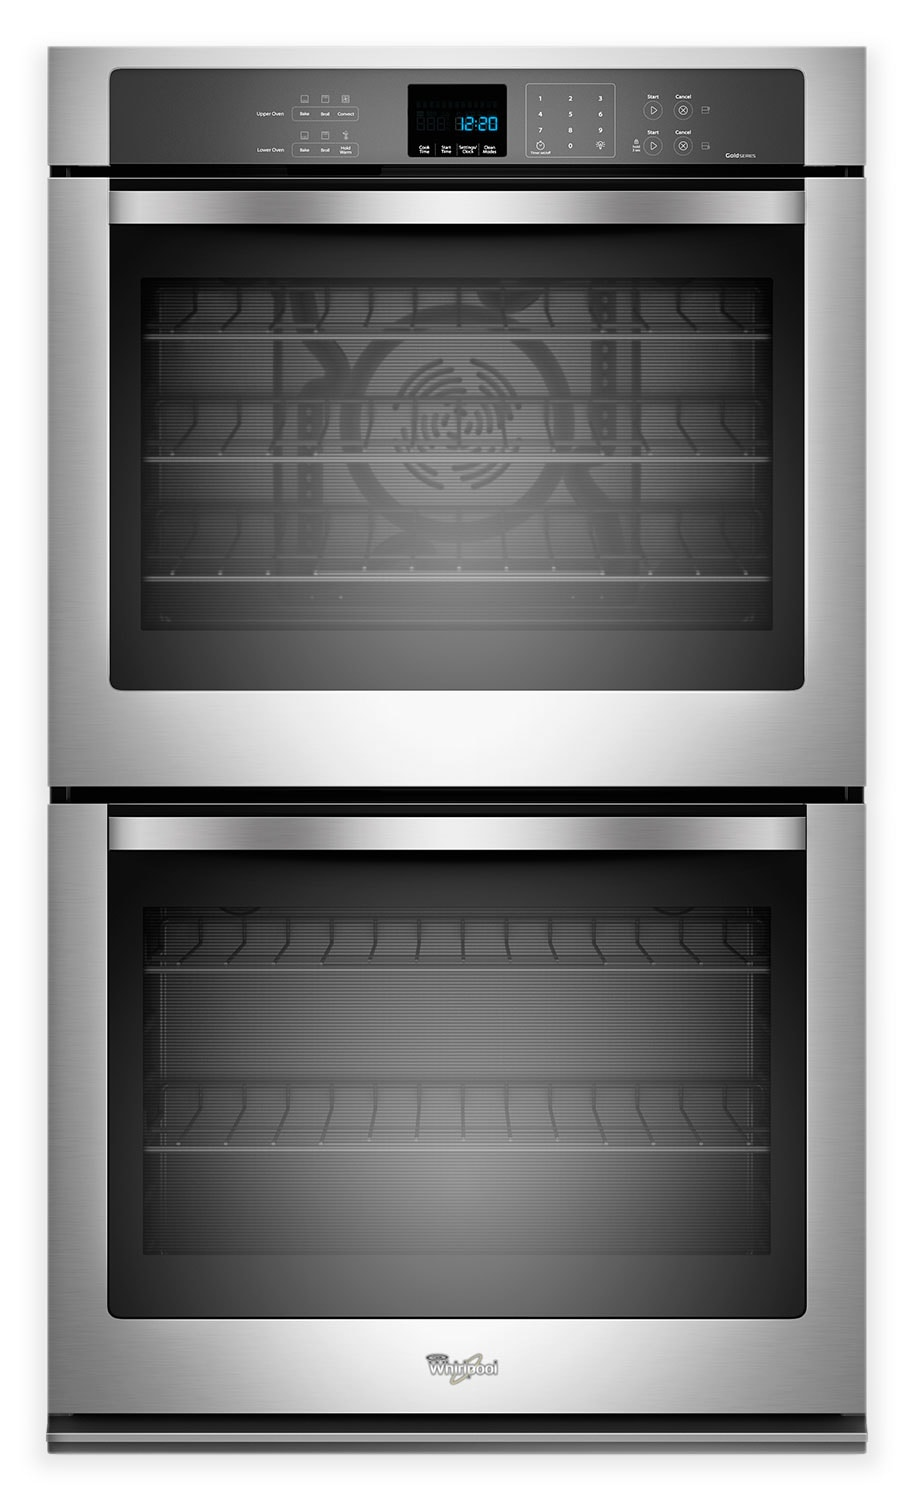 Cooking Products - Whirlpool Gold® 10 Cu. Ft. Double Wall Oven – Stainless Steel